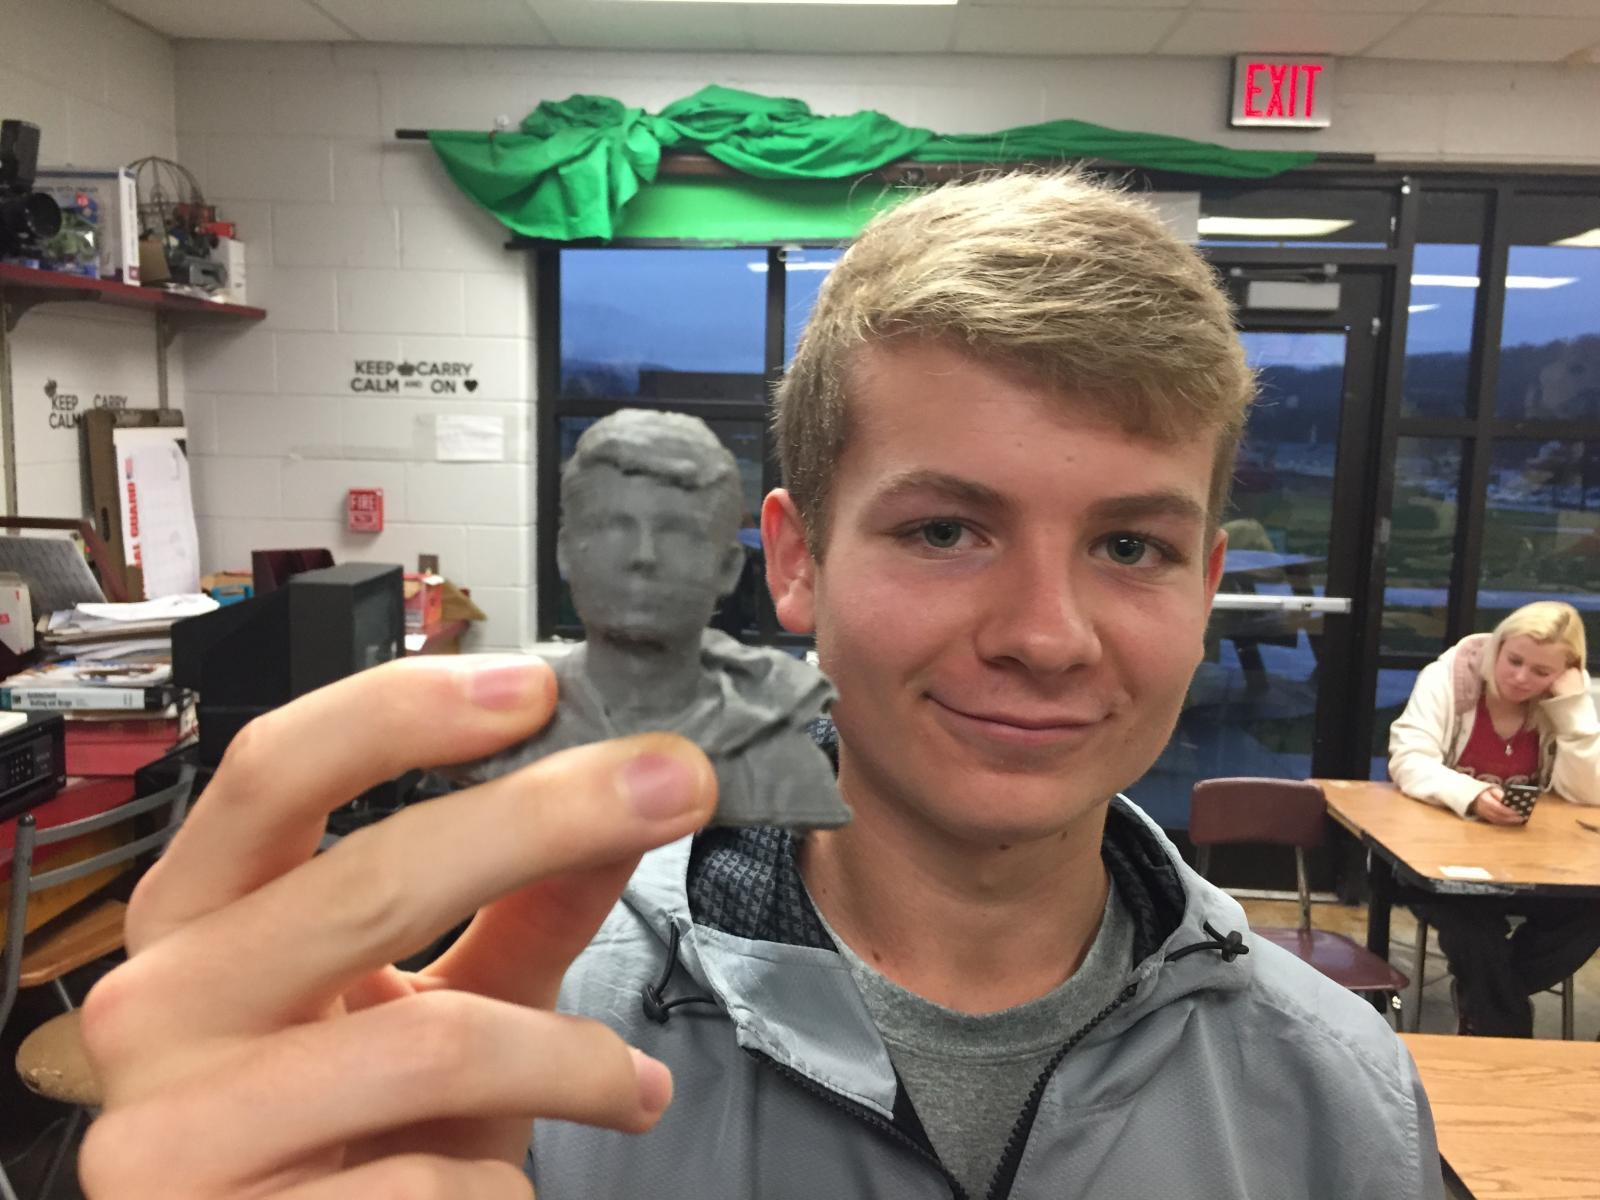 Ben Vickery holds a 3-D printed minature copy of himself